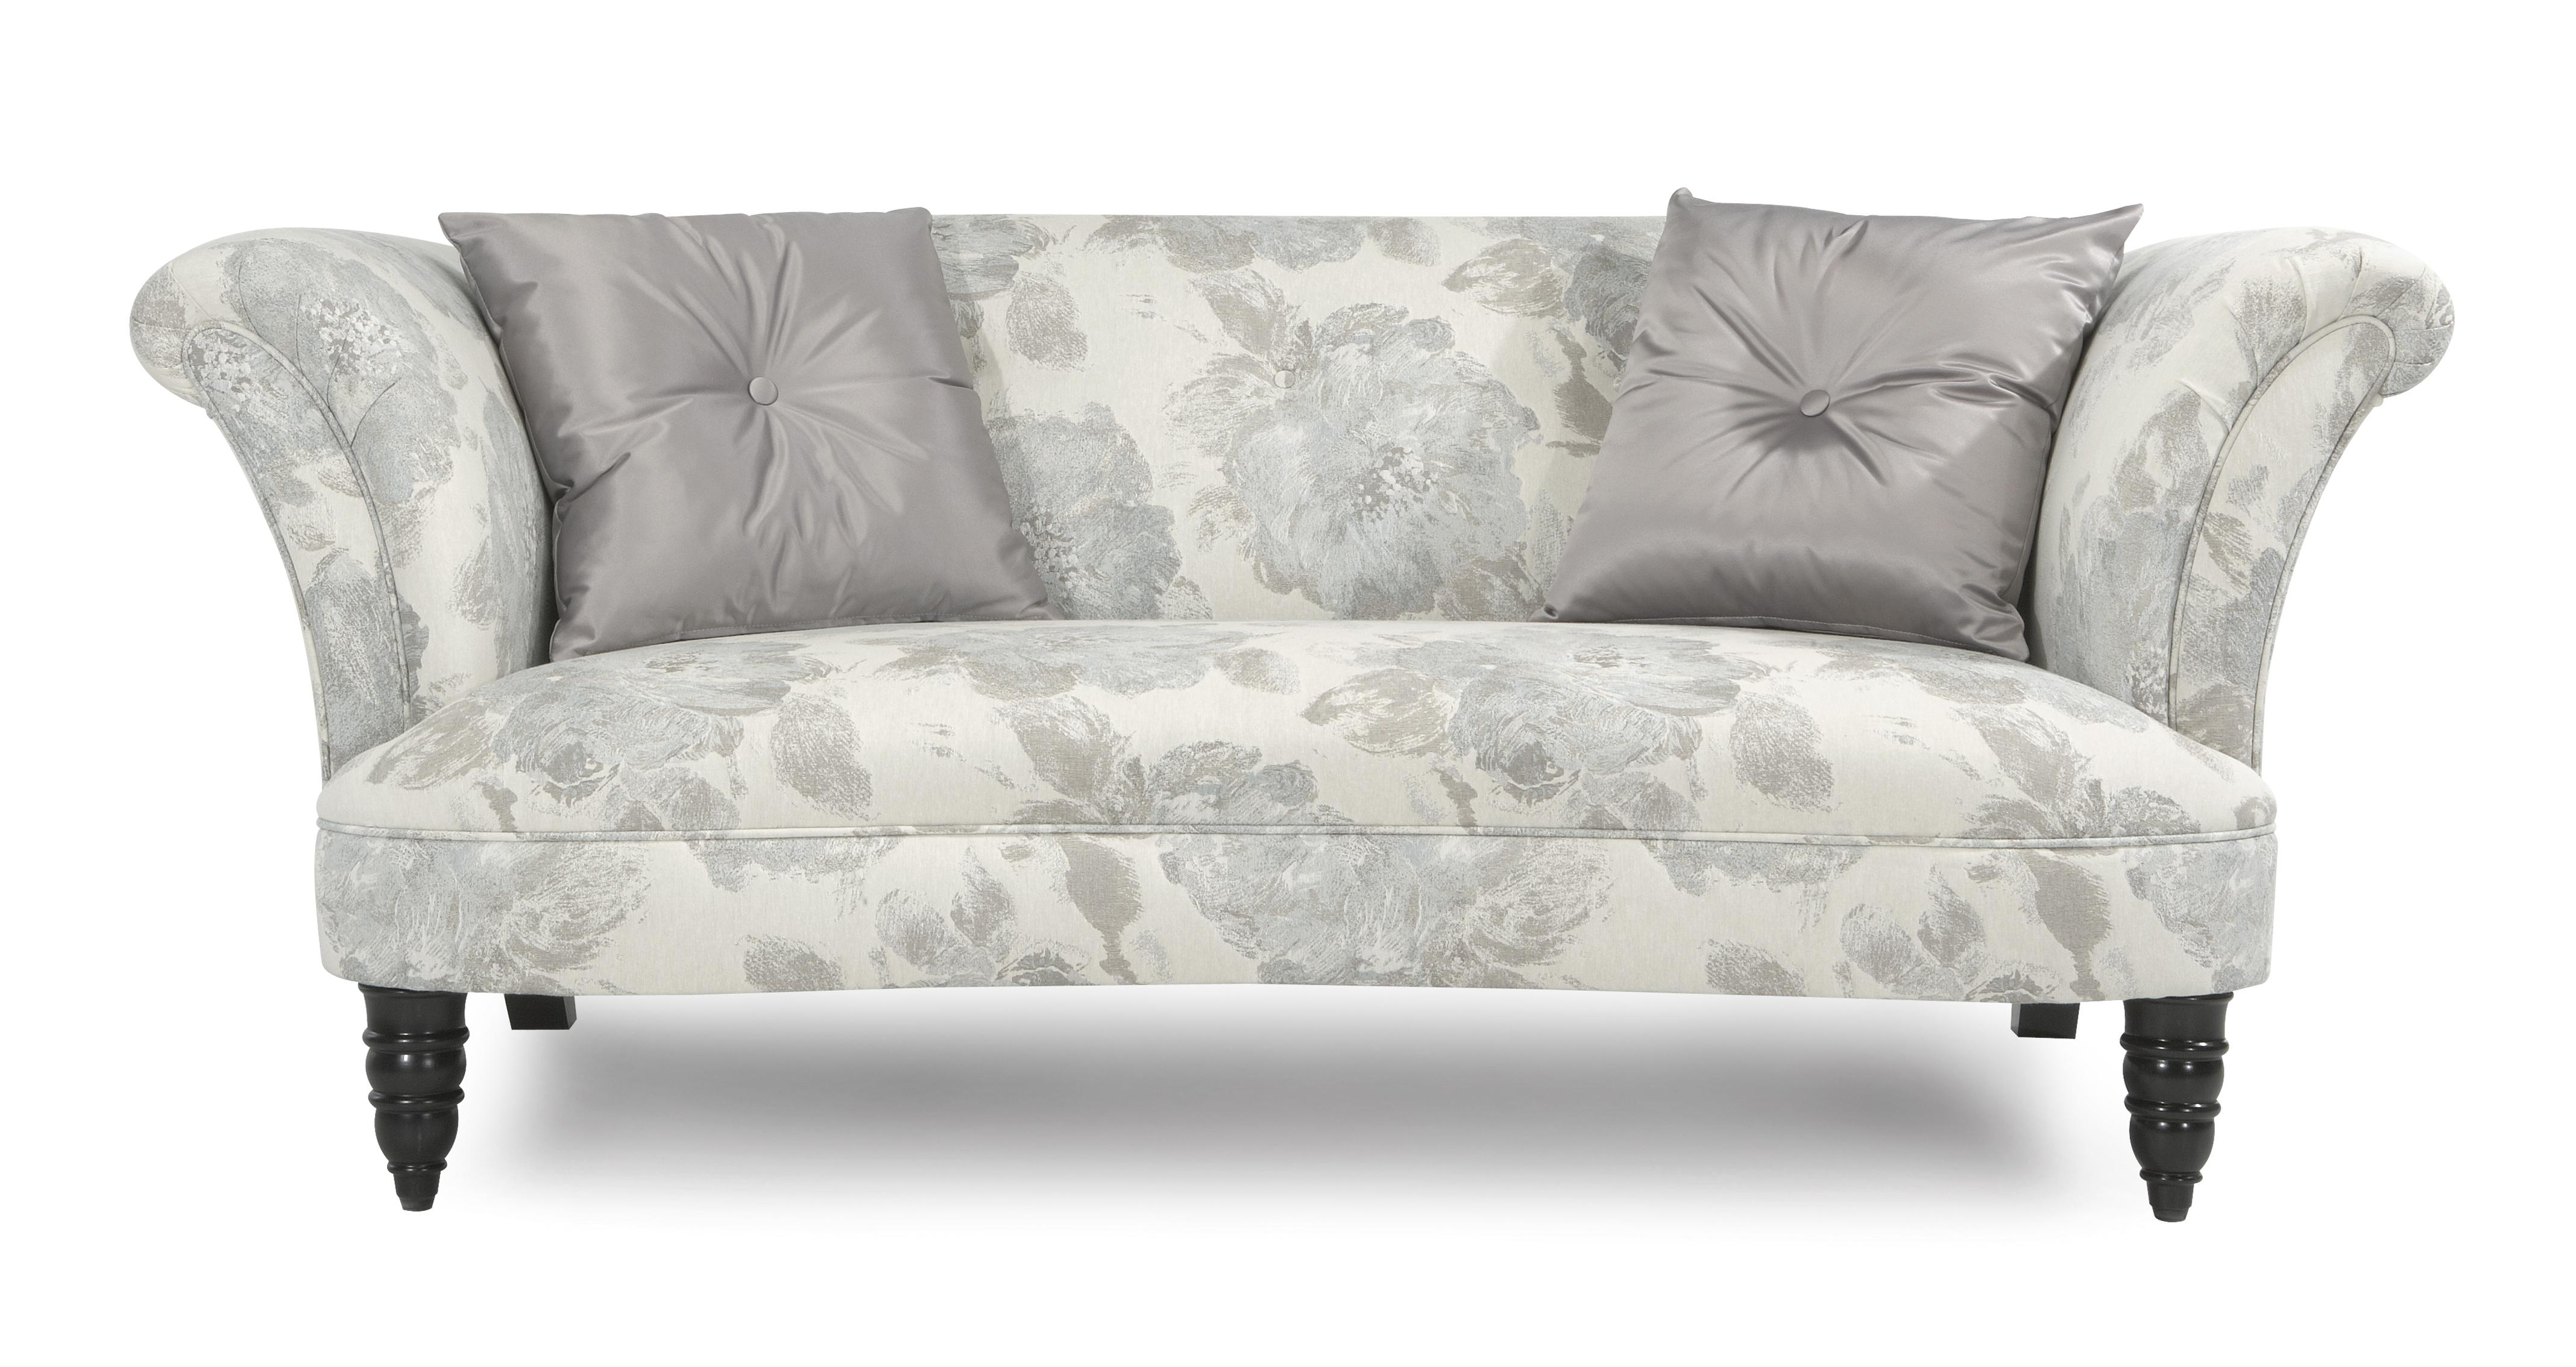 Concerto Pattern 2 Seater Sofa Concerto Pattern Dfs